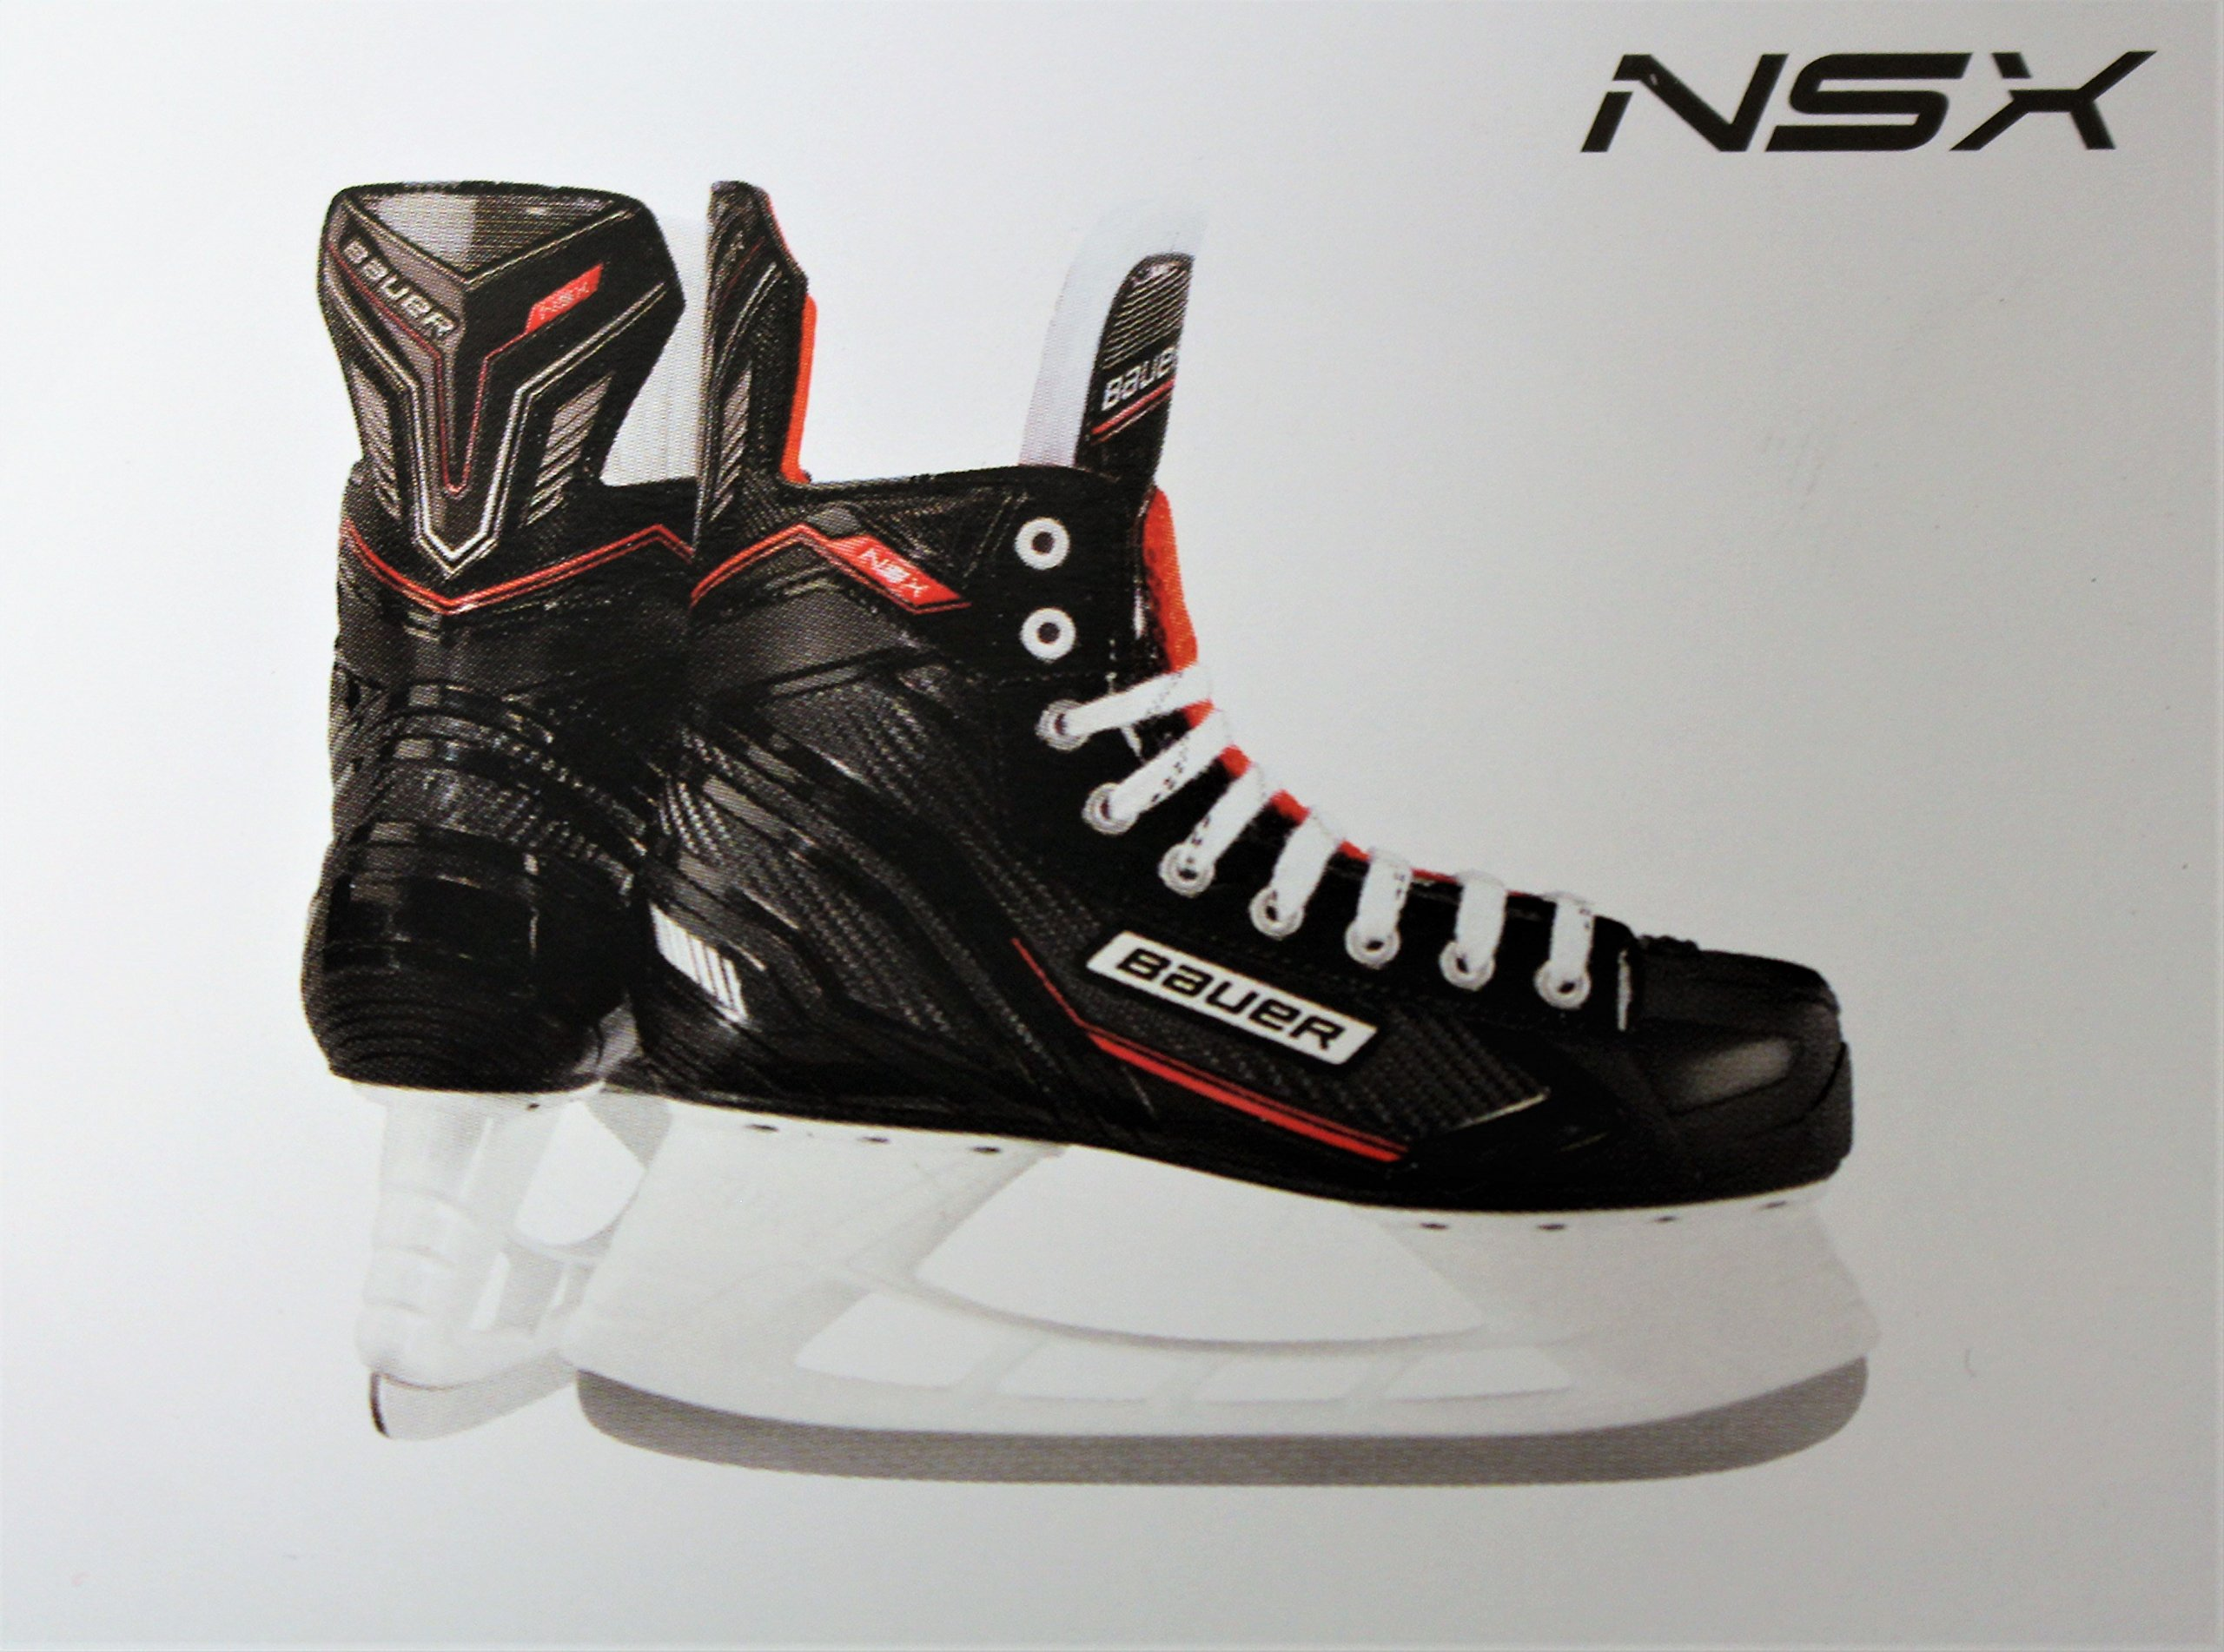 Bauer NSX Junior Hockey Skates Size 3 R by Bauer NSX Junior Hockey Skates